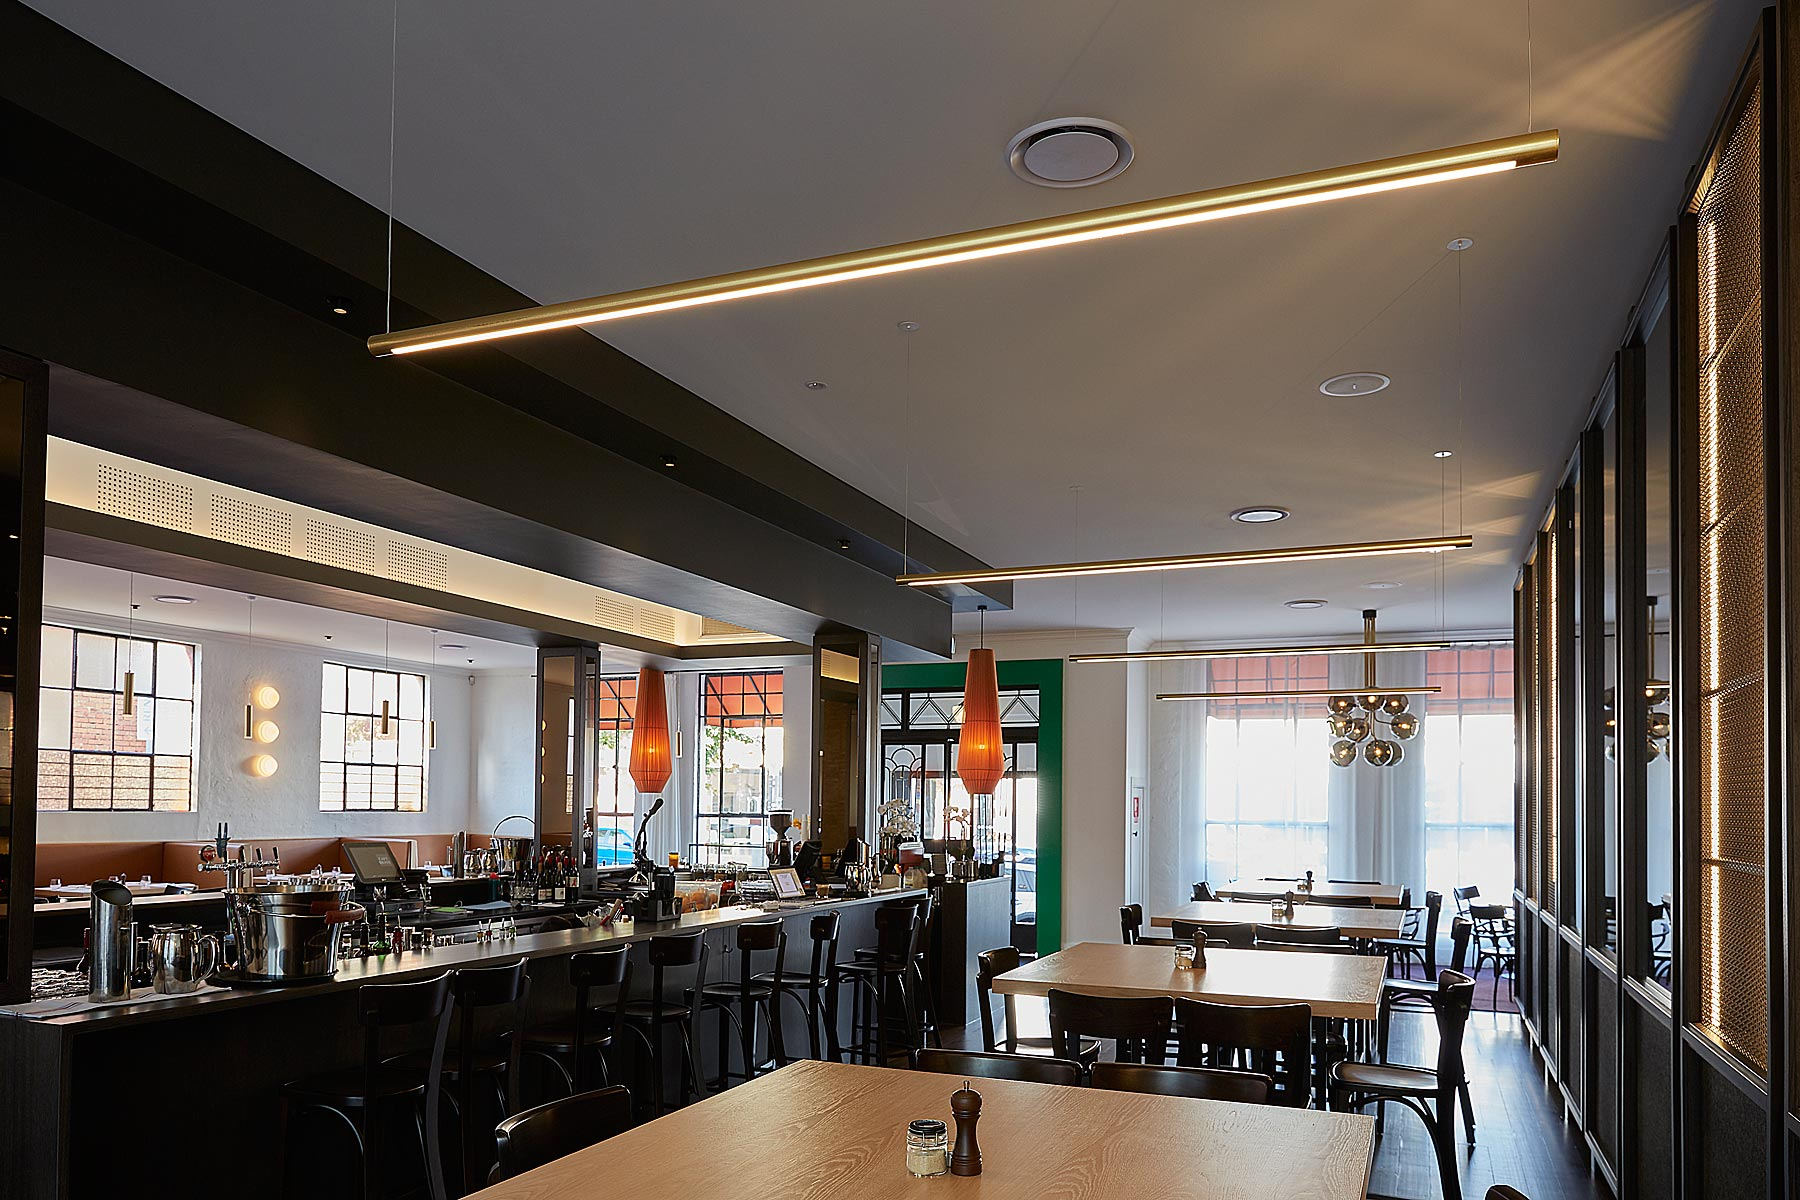 interior_cafe_photography-4.jpg